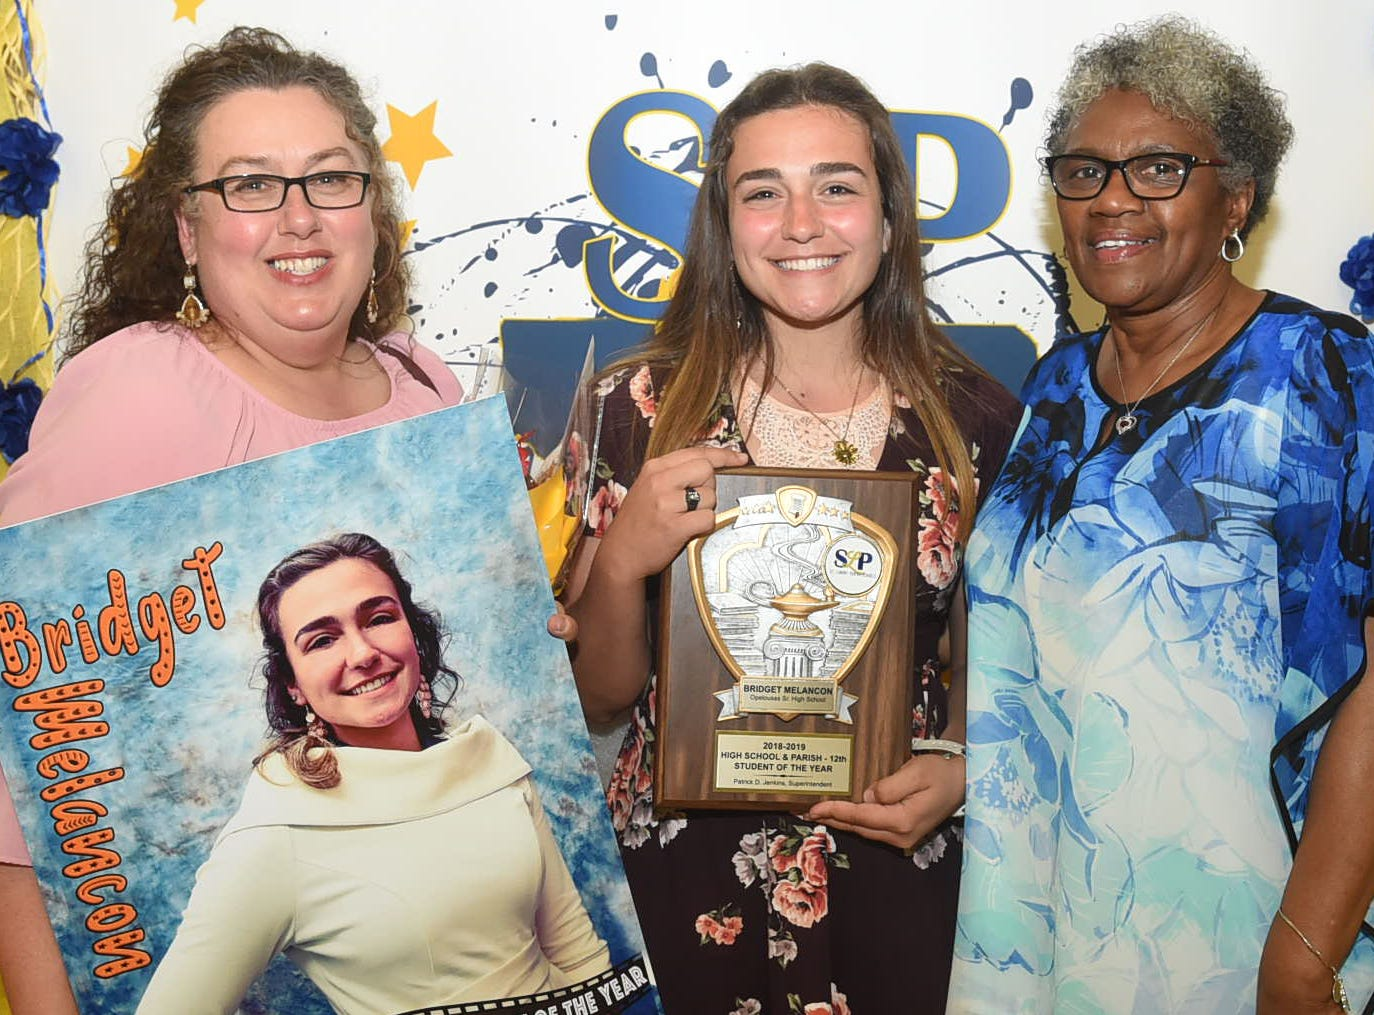 The top students from St. Landry Parish were honored Thursday at a reception and awards banquet at the Opelousas Civic Center.